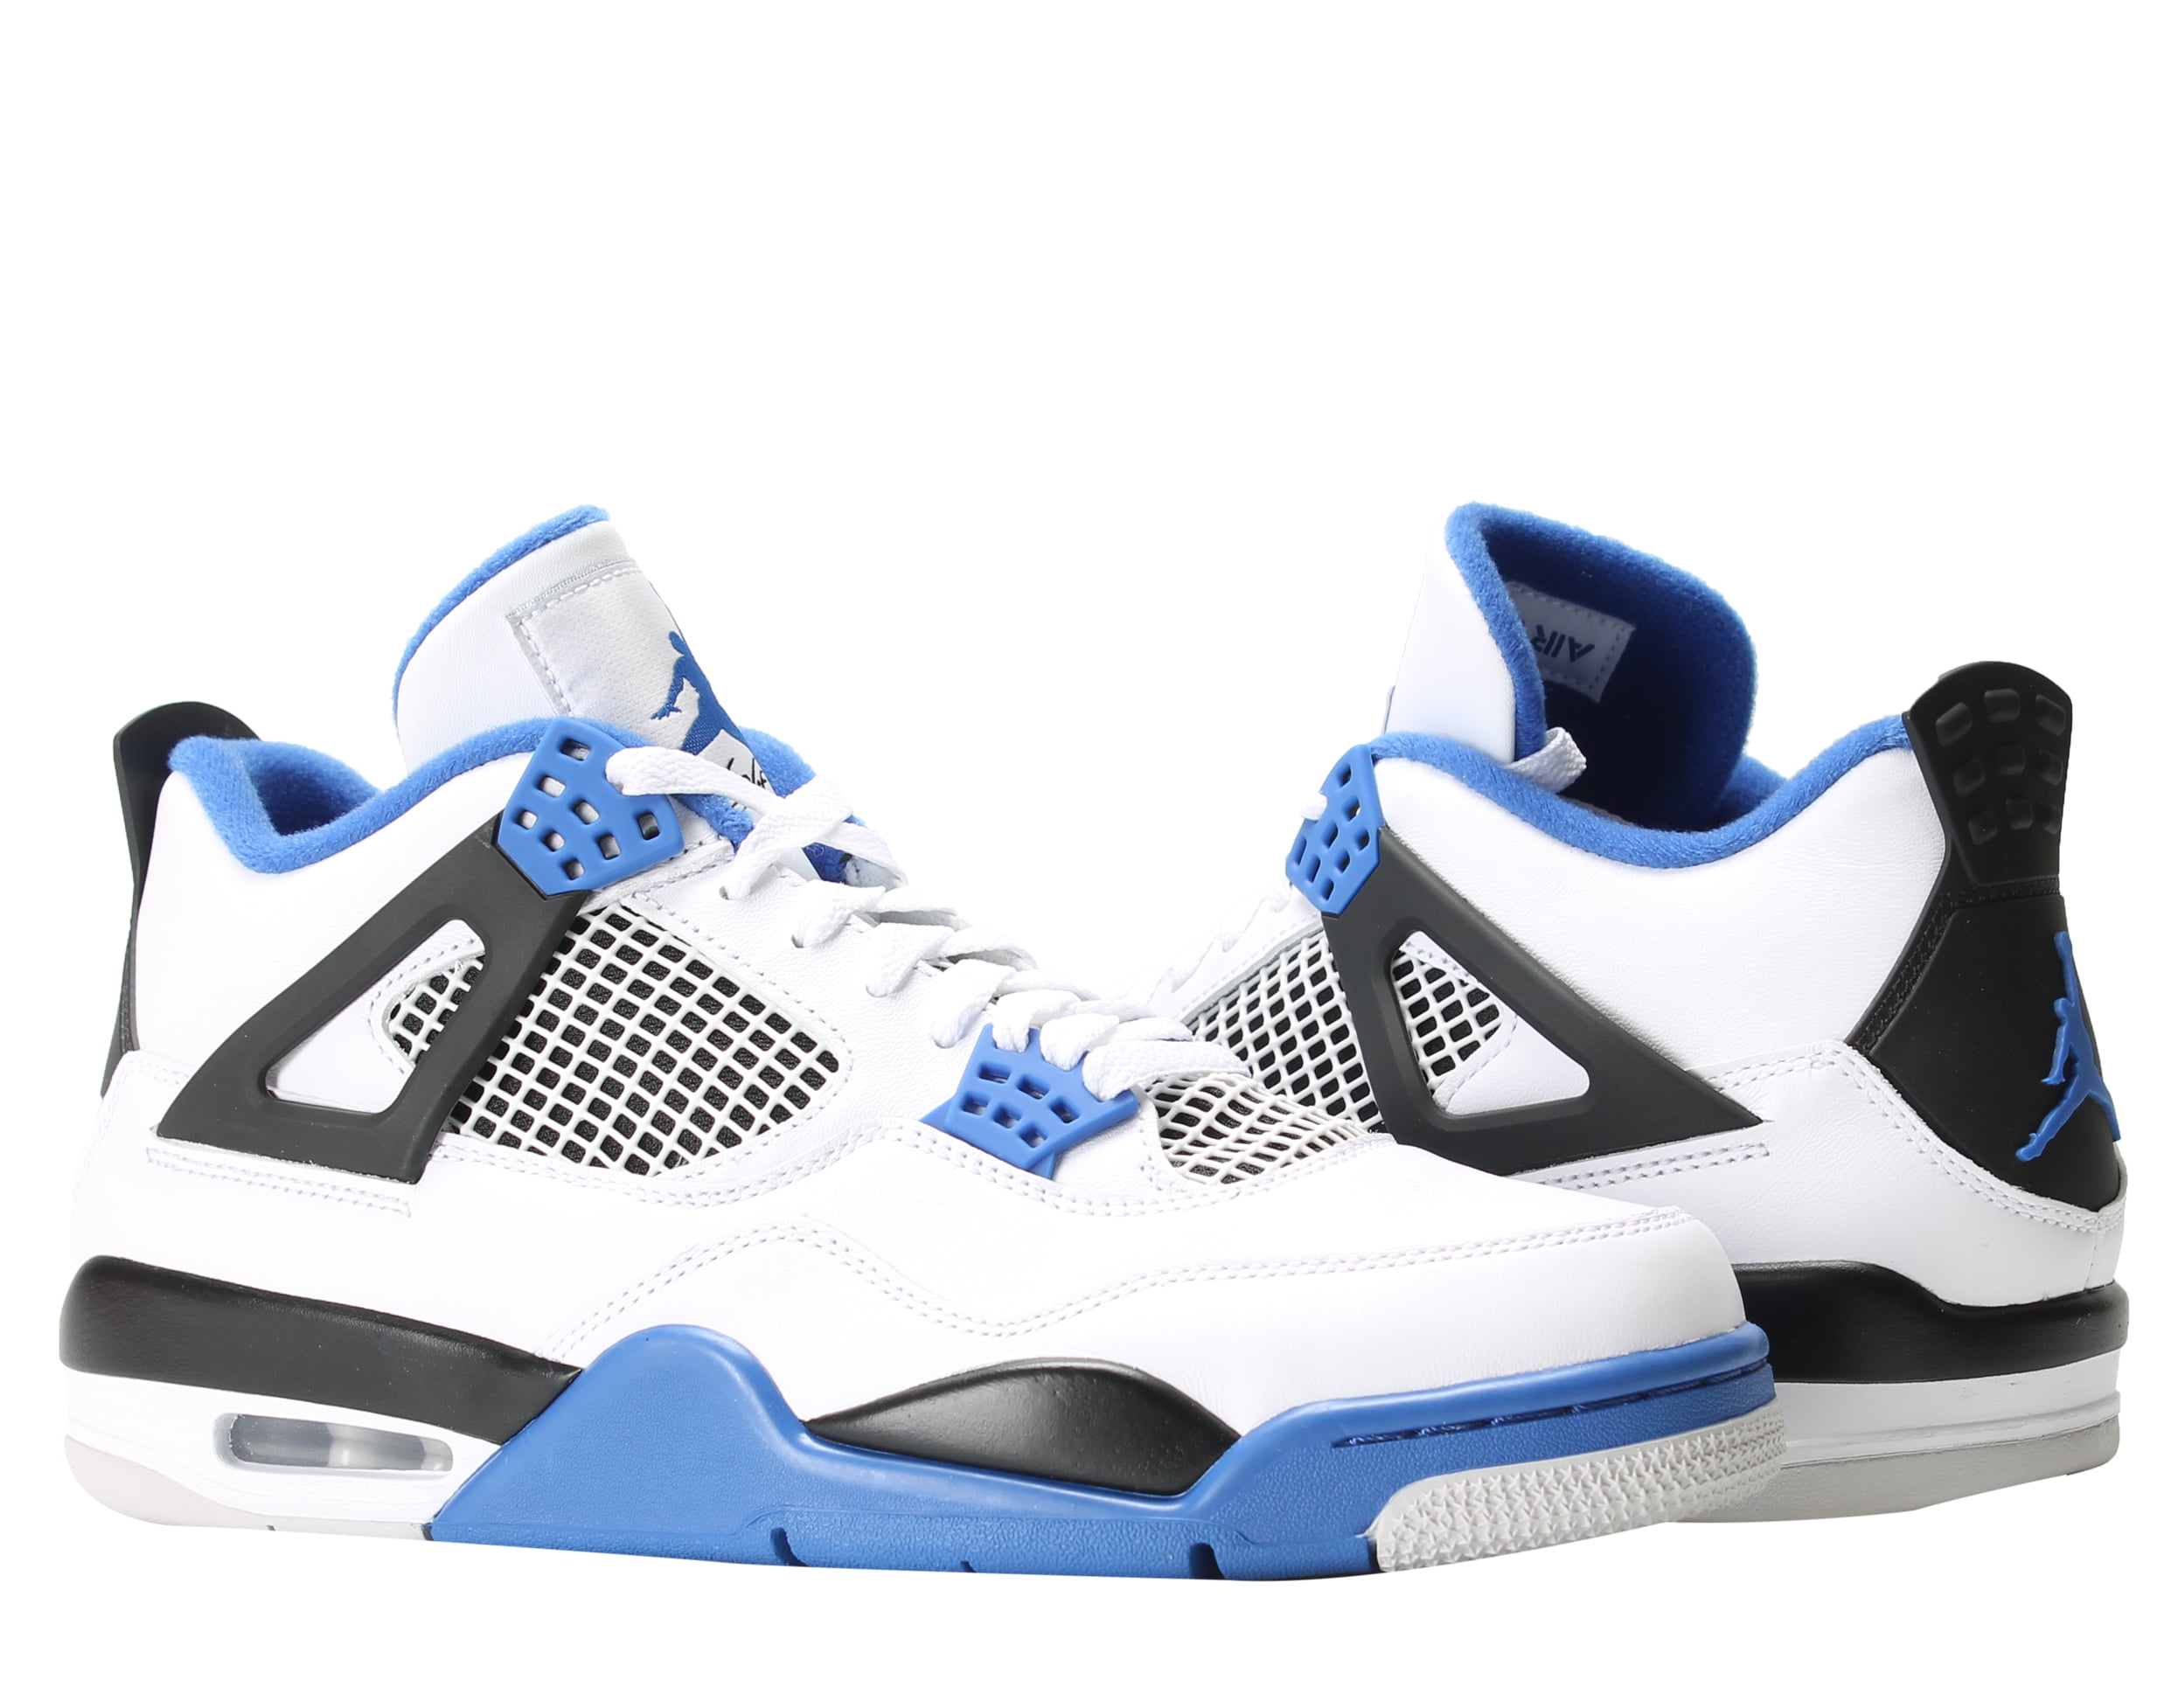 factory authentic 60307 ba9ac cheapest nike air jordan 4 retro motorsports blue mens basketball shoes  308497 117 57904 c6dc1